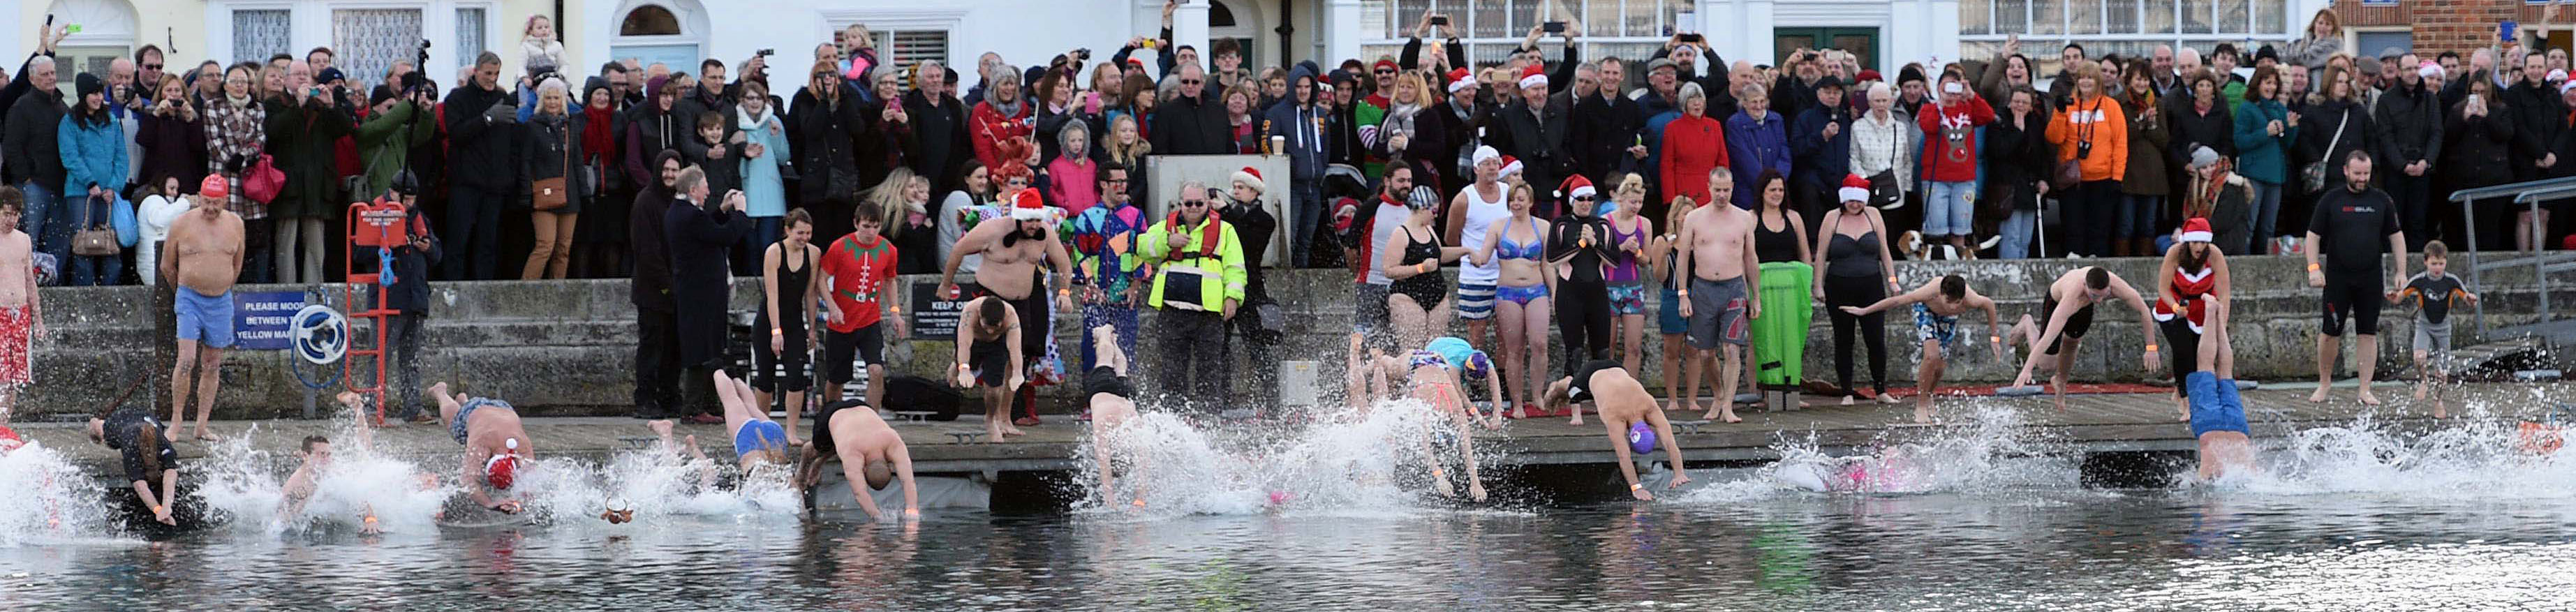 Annual Christmas Day Harbour Swim   Who are you going to raise funds for?